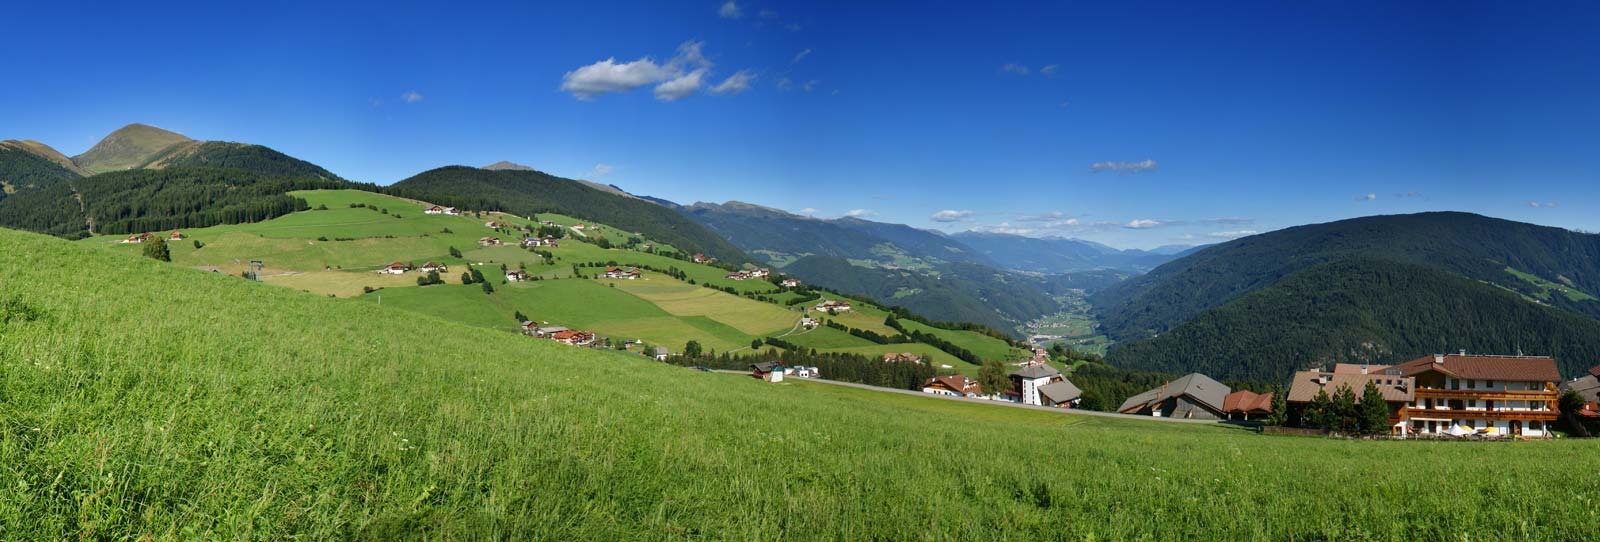 Panoramic View Of The Mountains Hotel Oberlechner